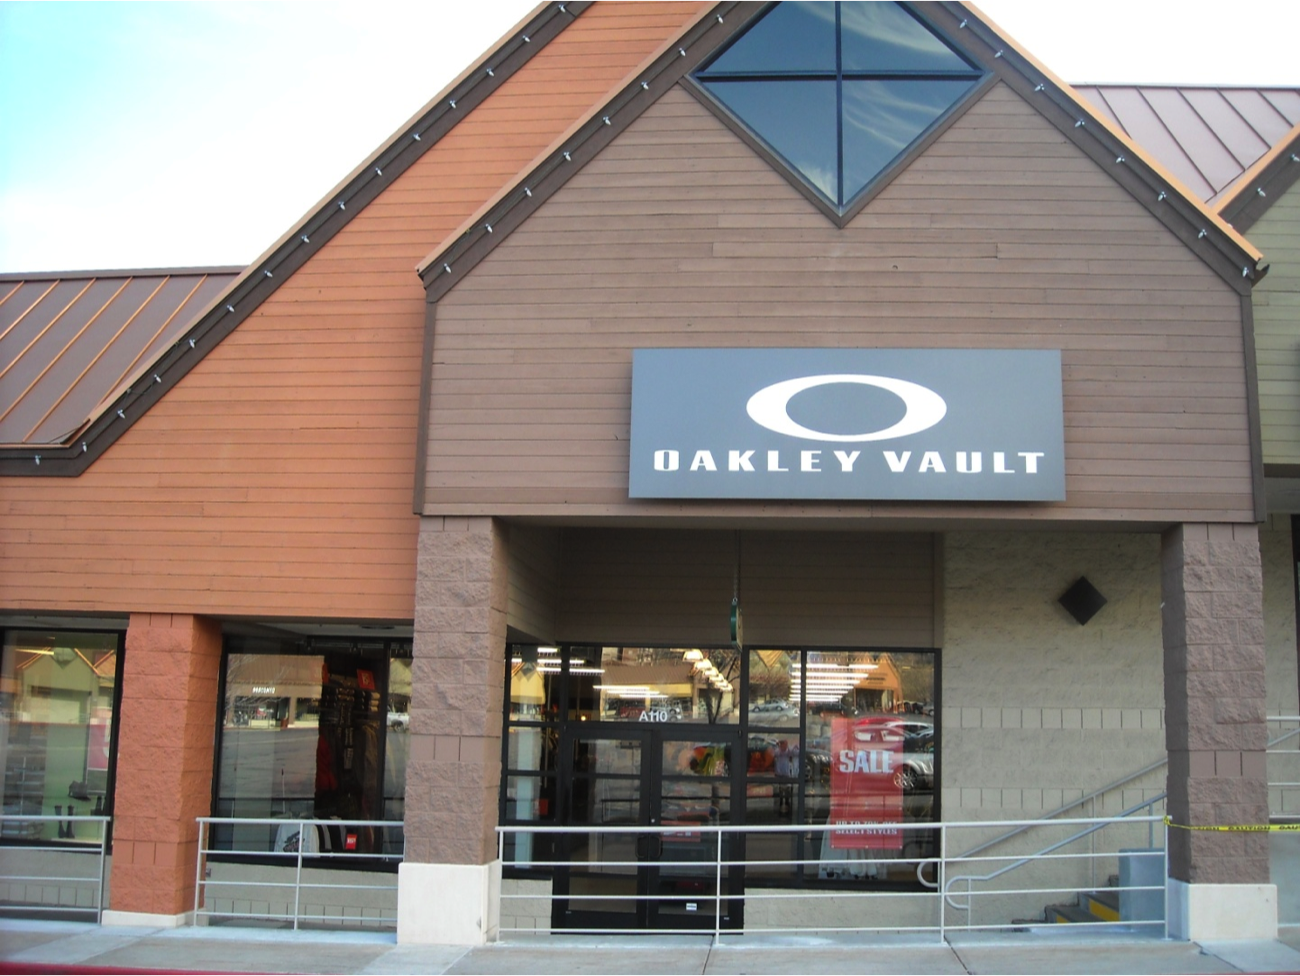 oakley vault coupons near me in park city 8coupons. Black Bedroom Furniture Sets. Home Design Ideas